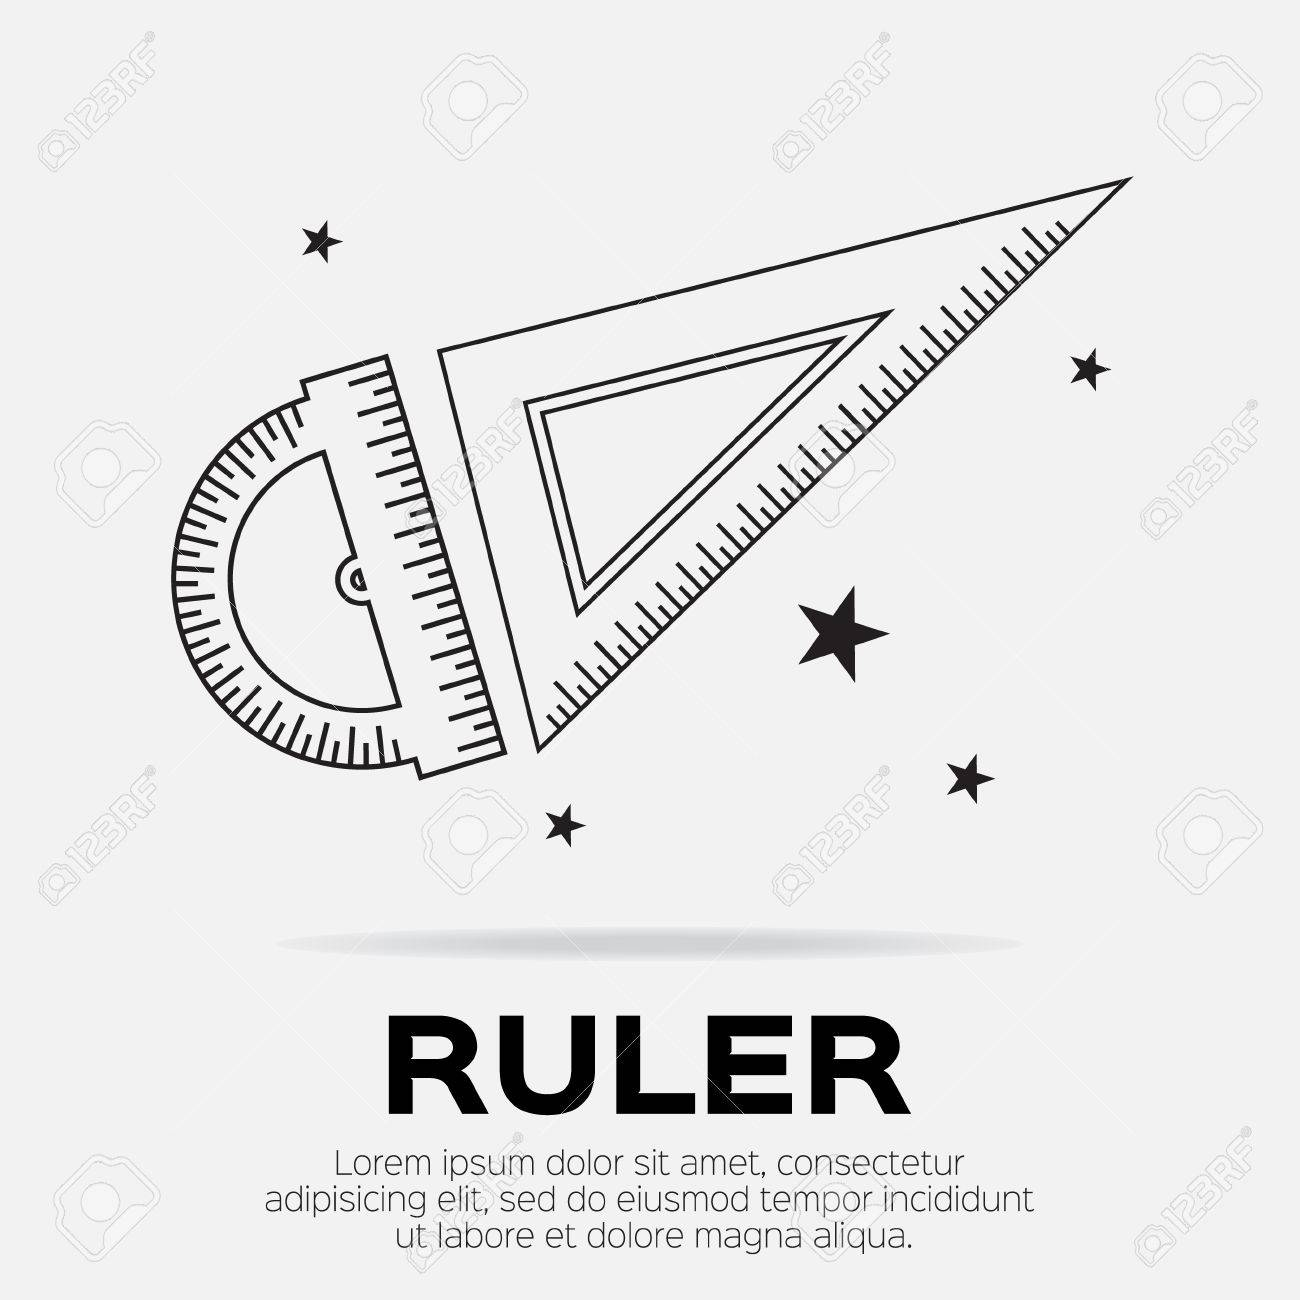 Ruler icon  Ruler symbol  Protractor  Office Supply Objects